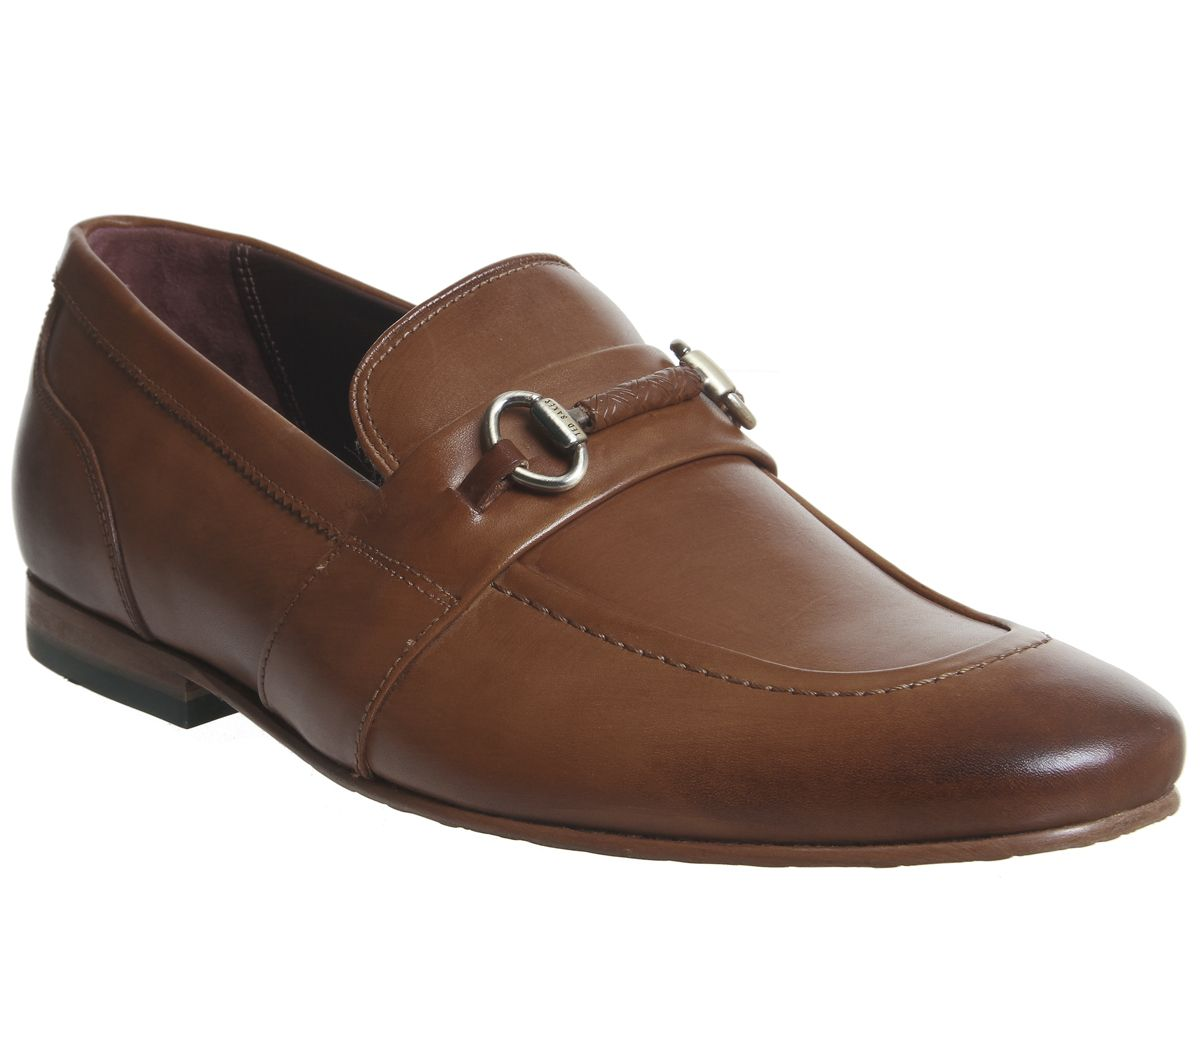 2b0a3e32b Ted Baker Daiser Loafers Tan Leather - Smart